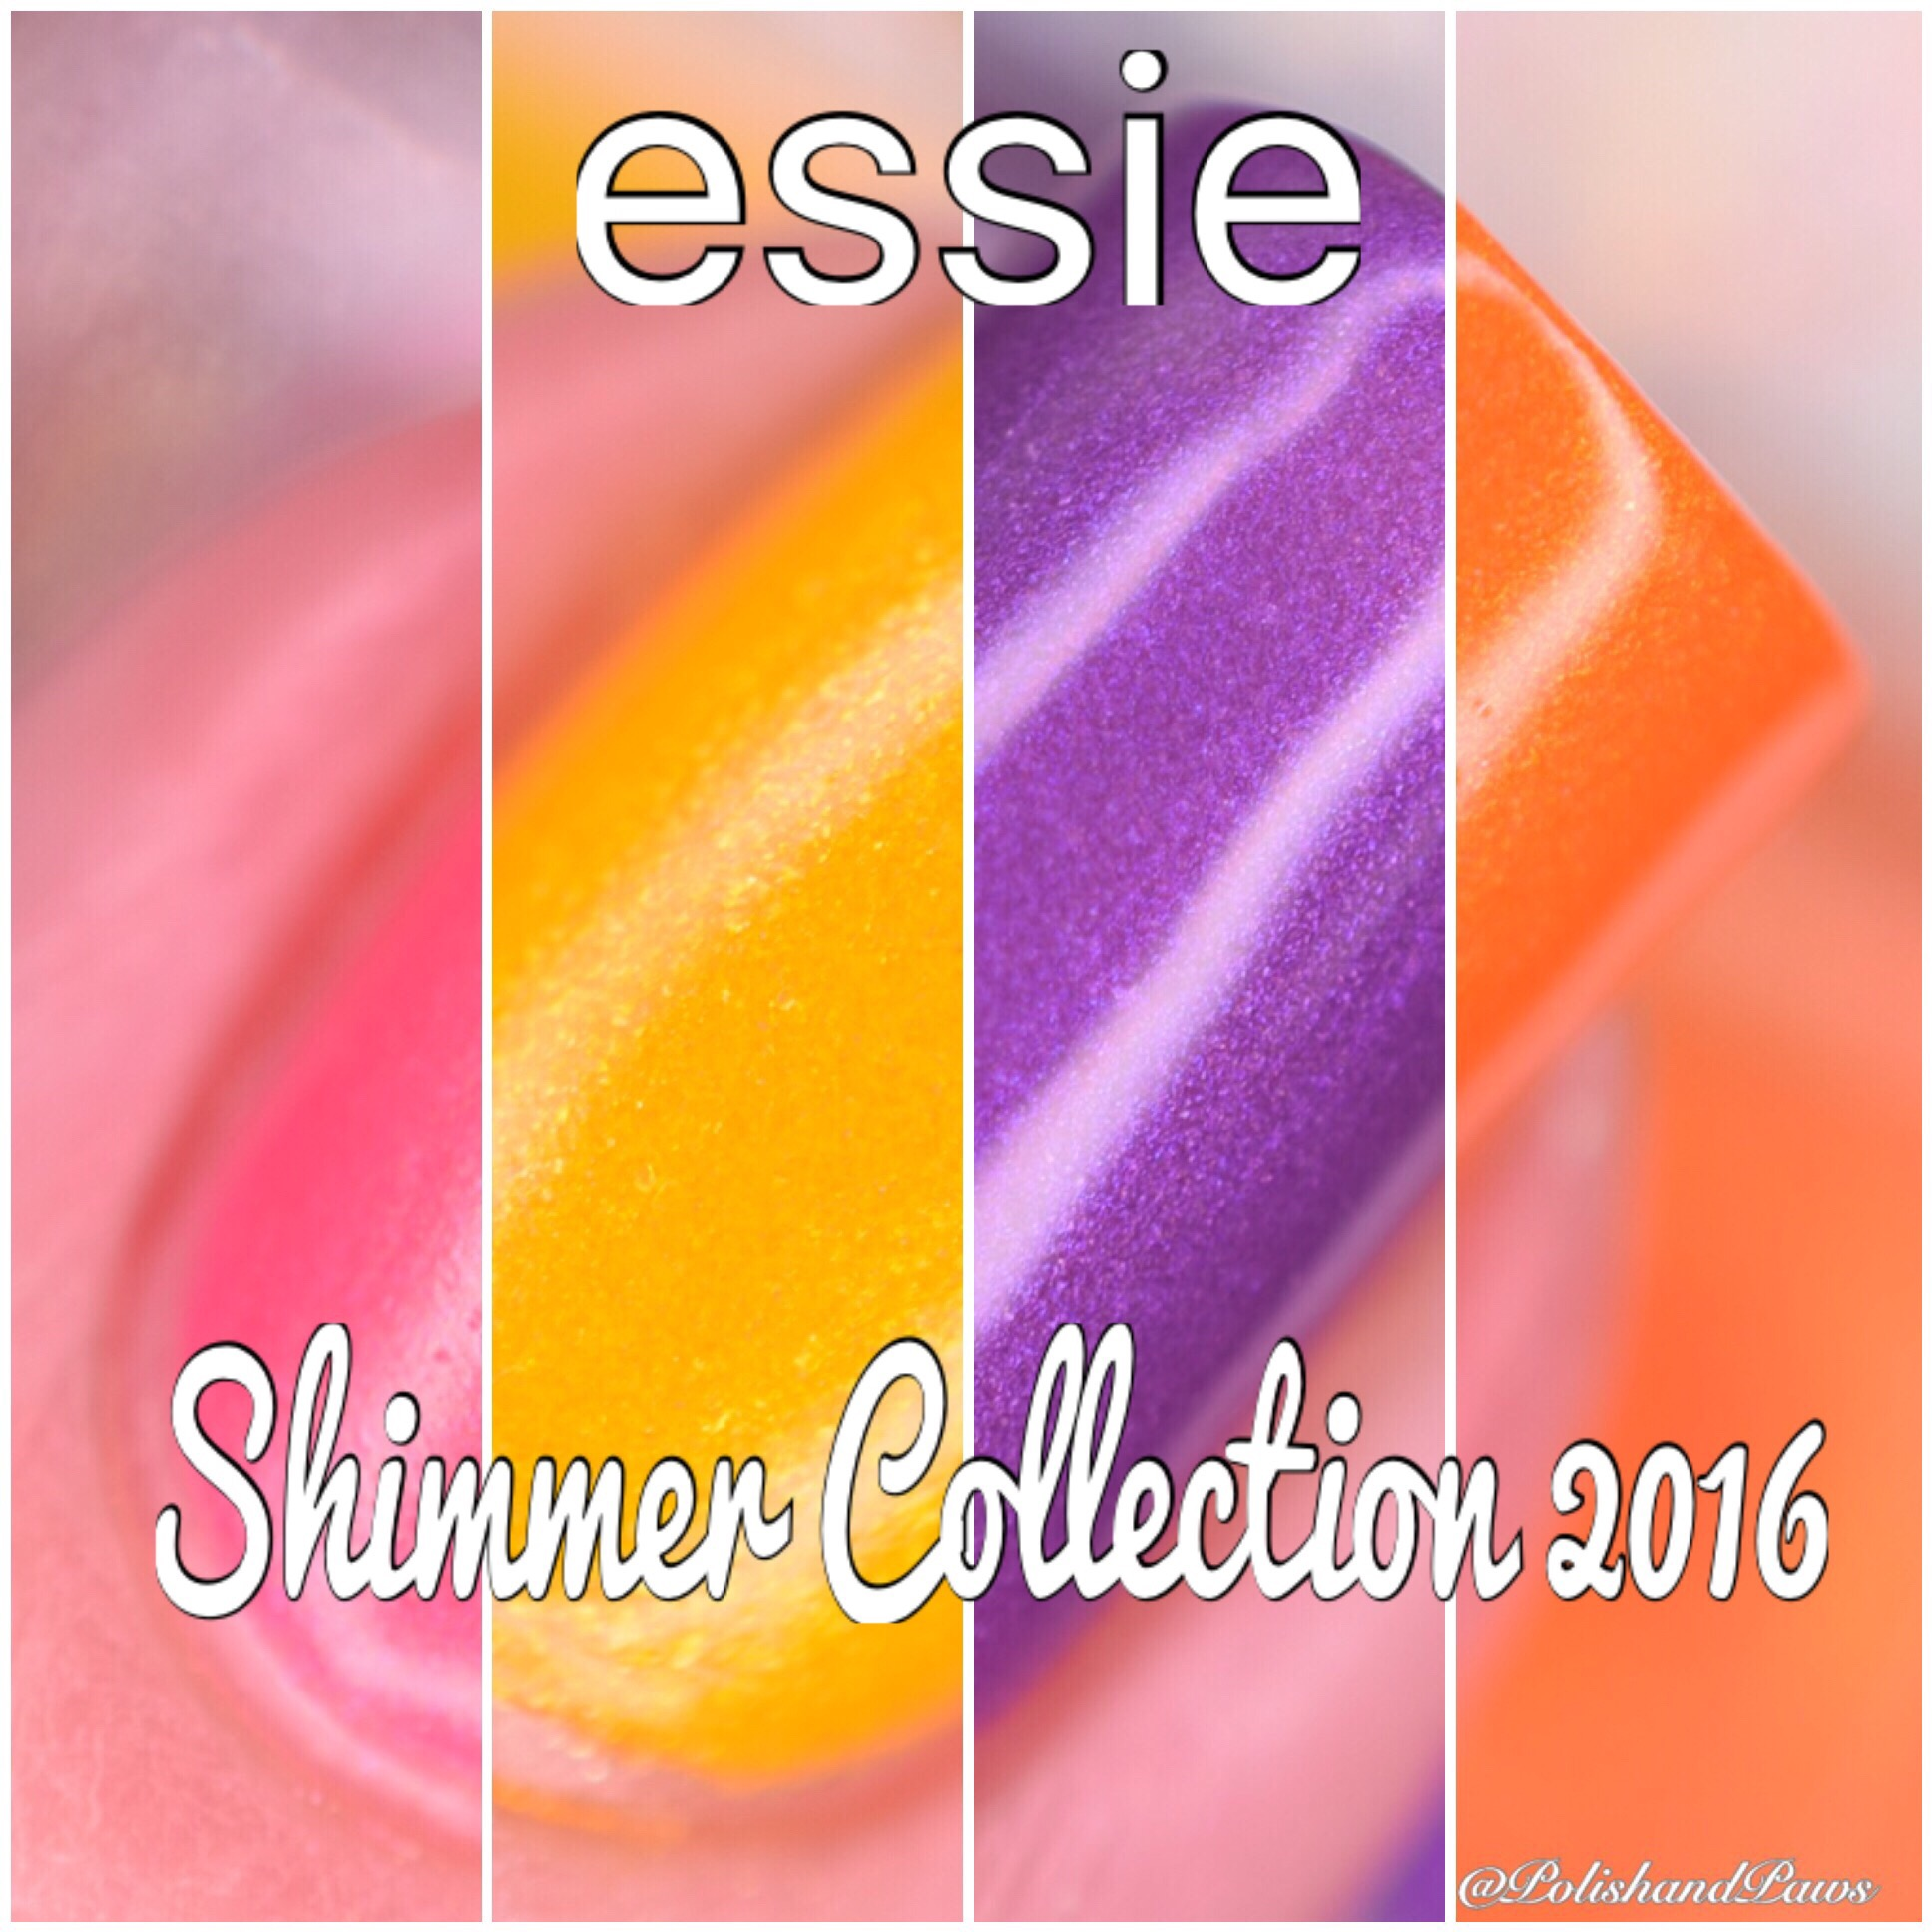 Essie Shimmer Collection 2016